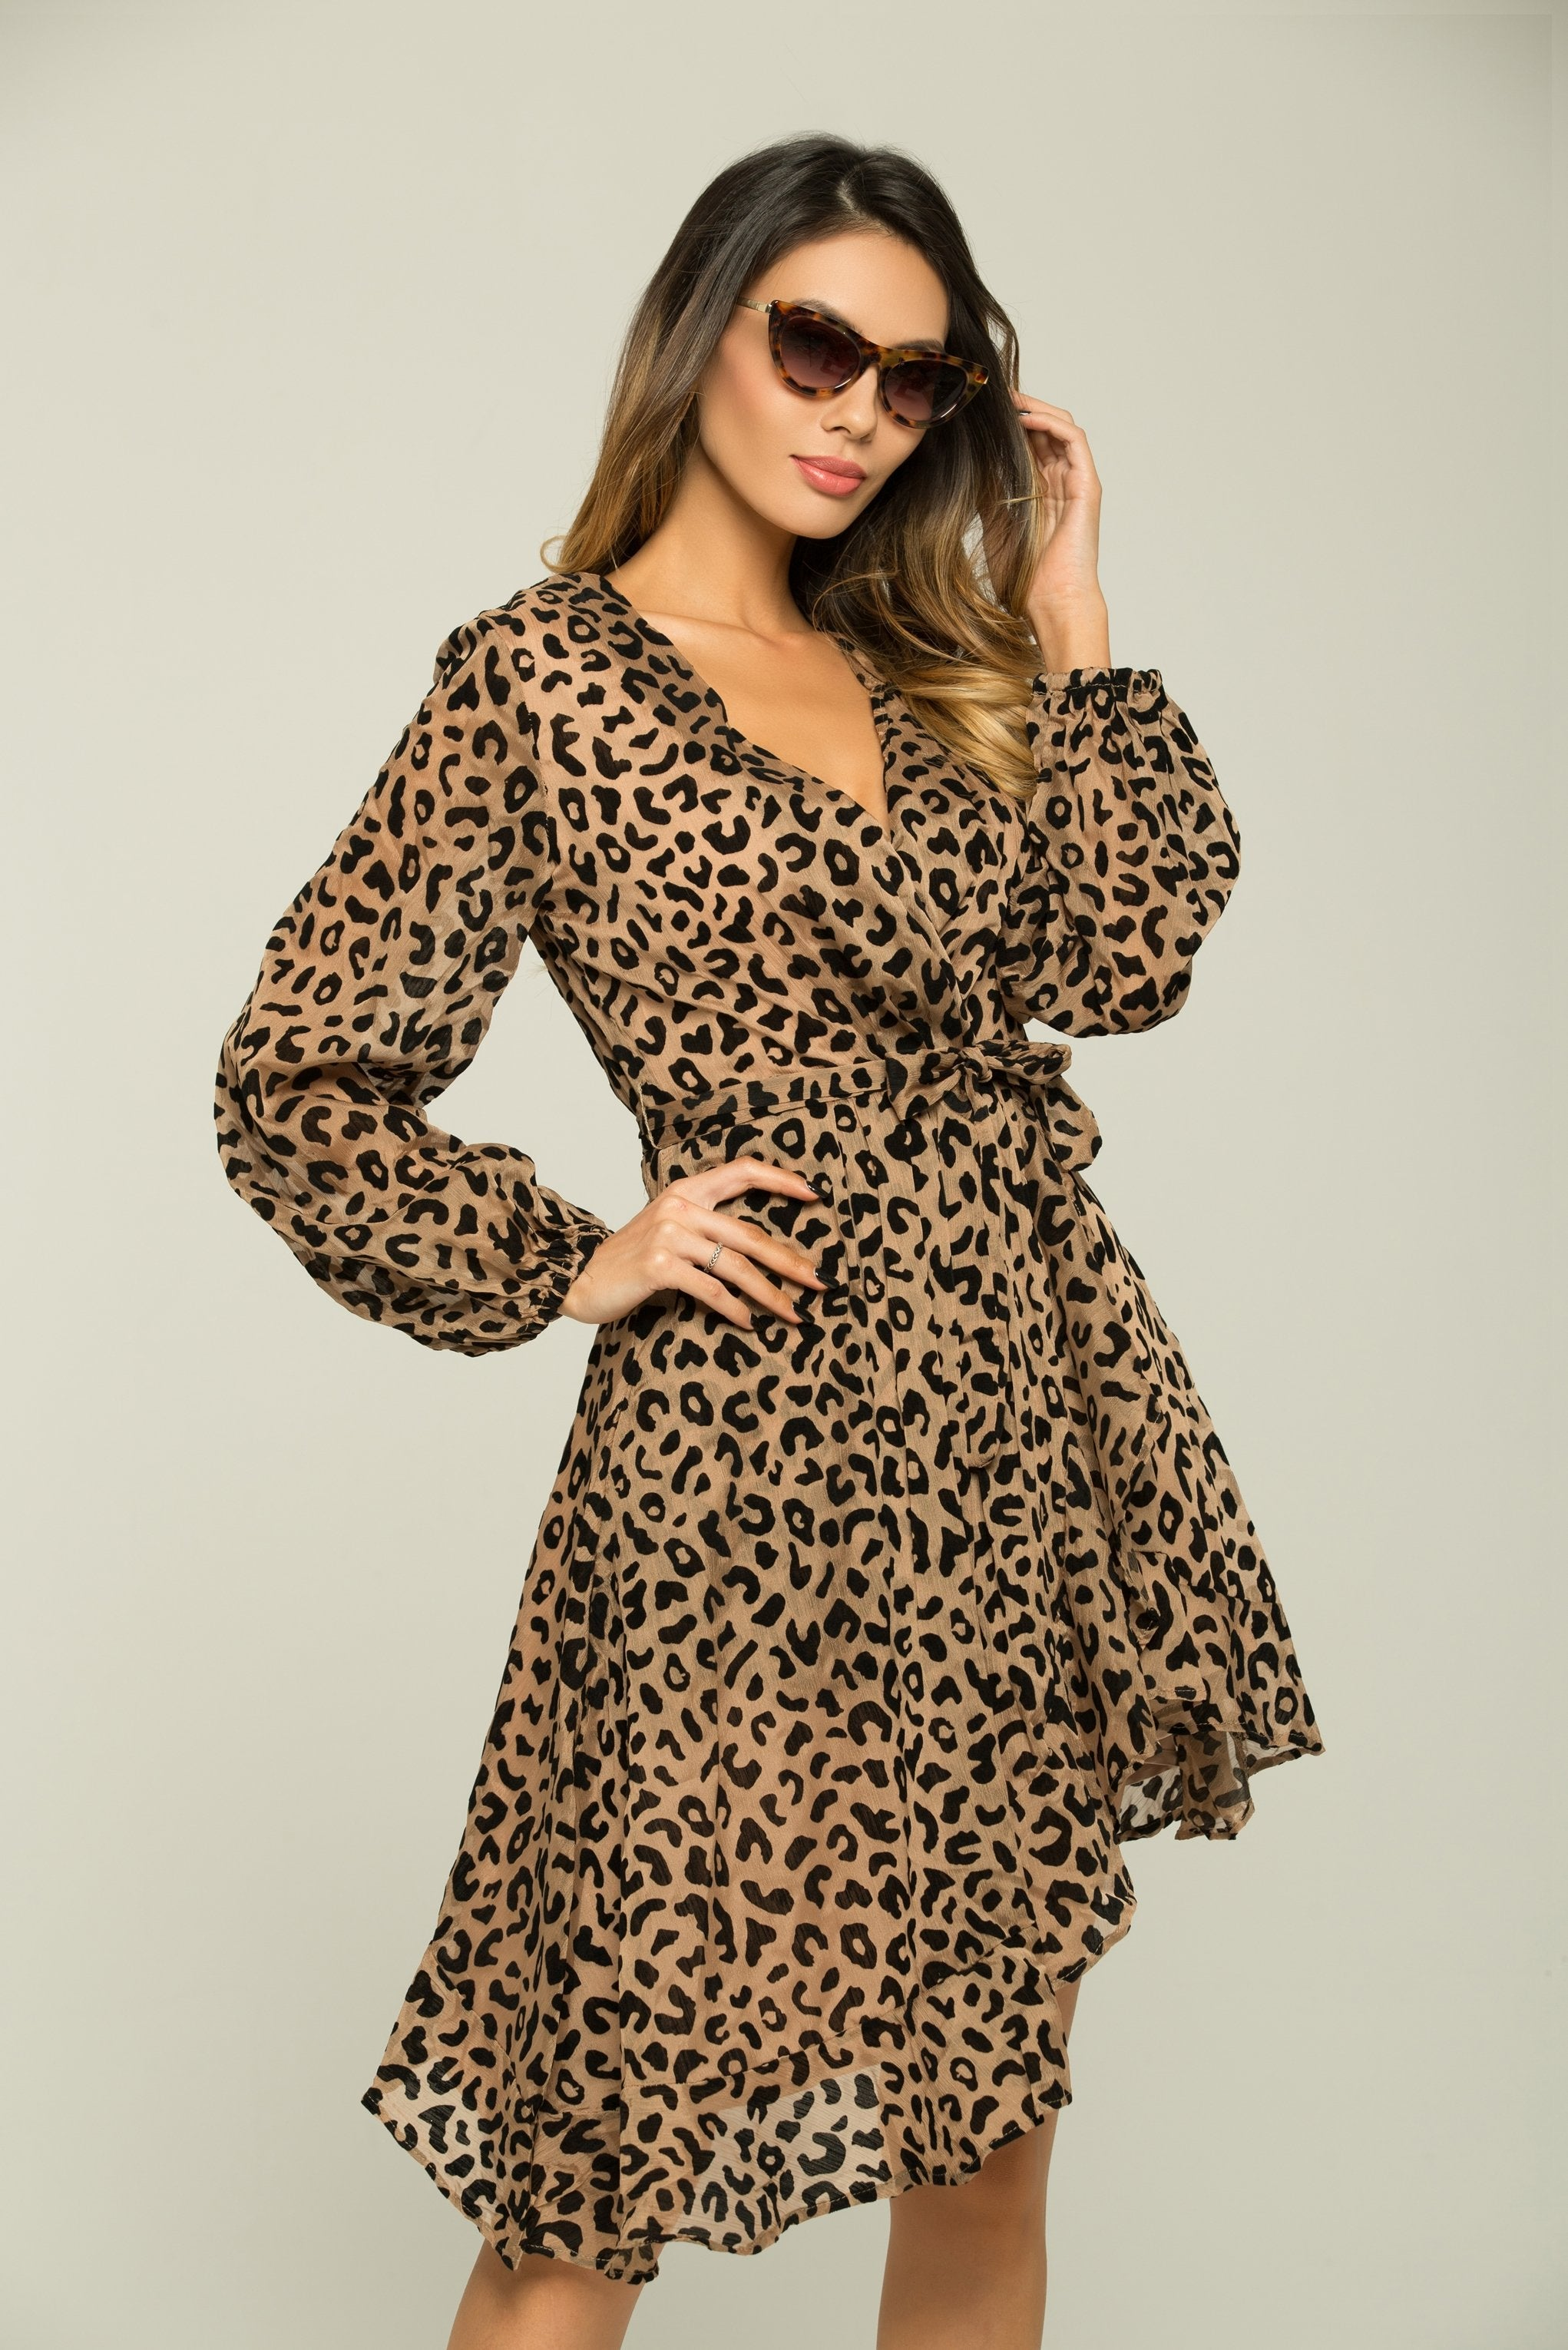 Black and Caramel Coffee Print Asymmetrical Dress